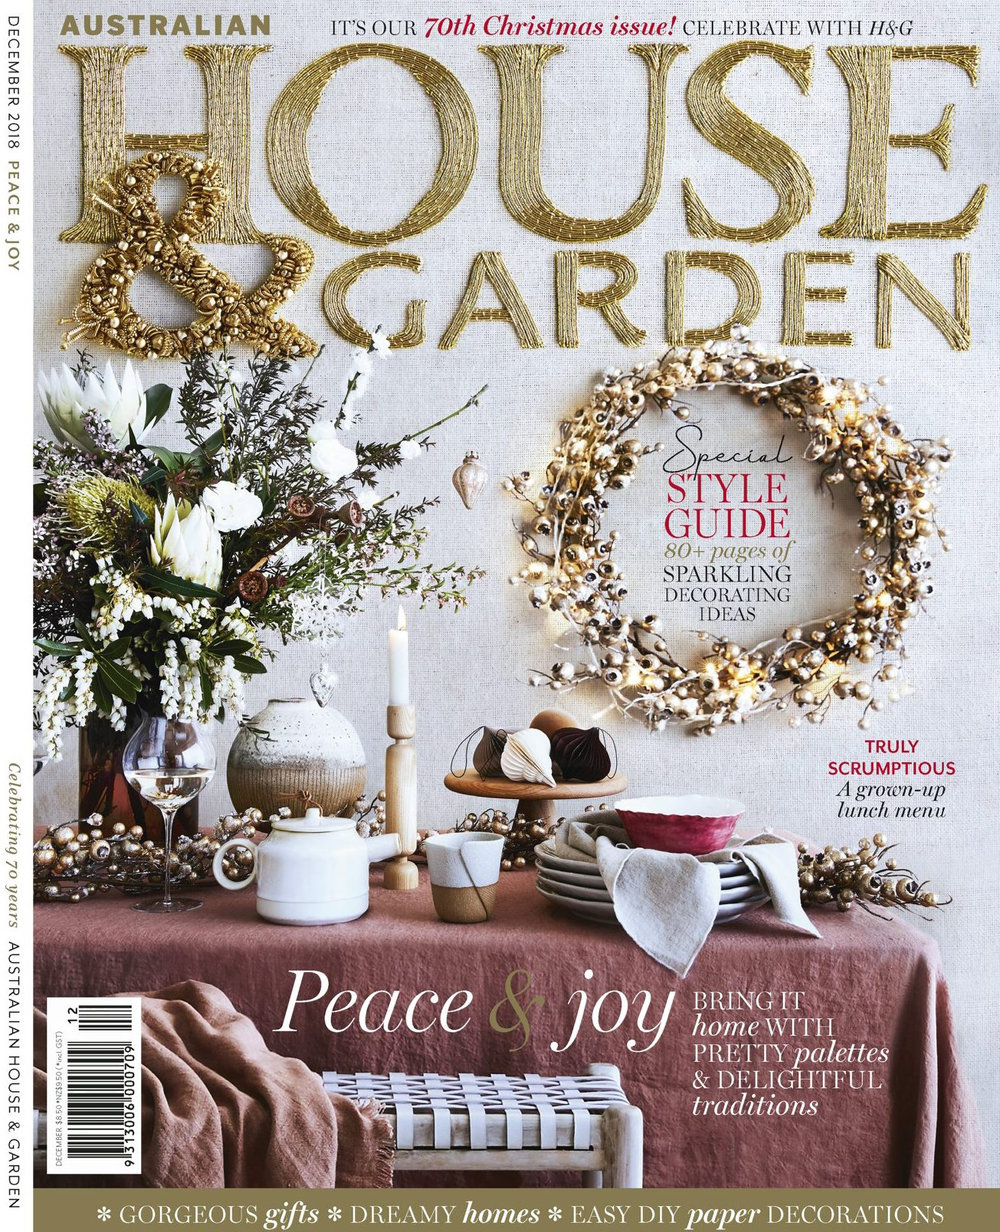 As seen in the Australian House & Garden magazine 70th Christmas edition